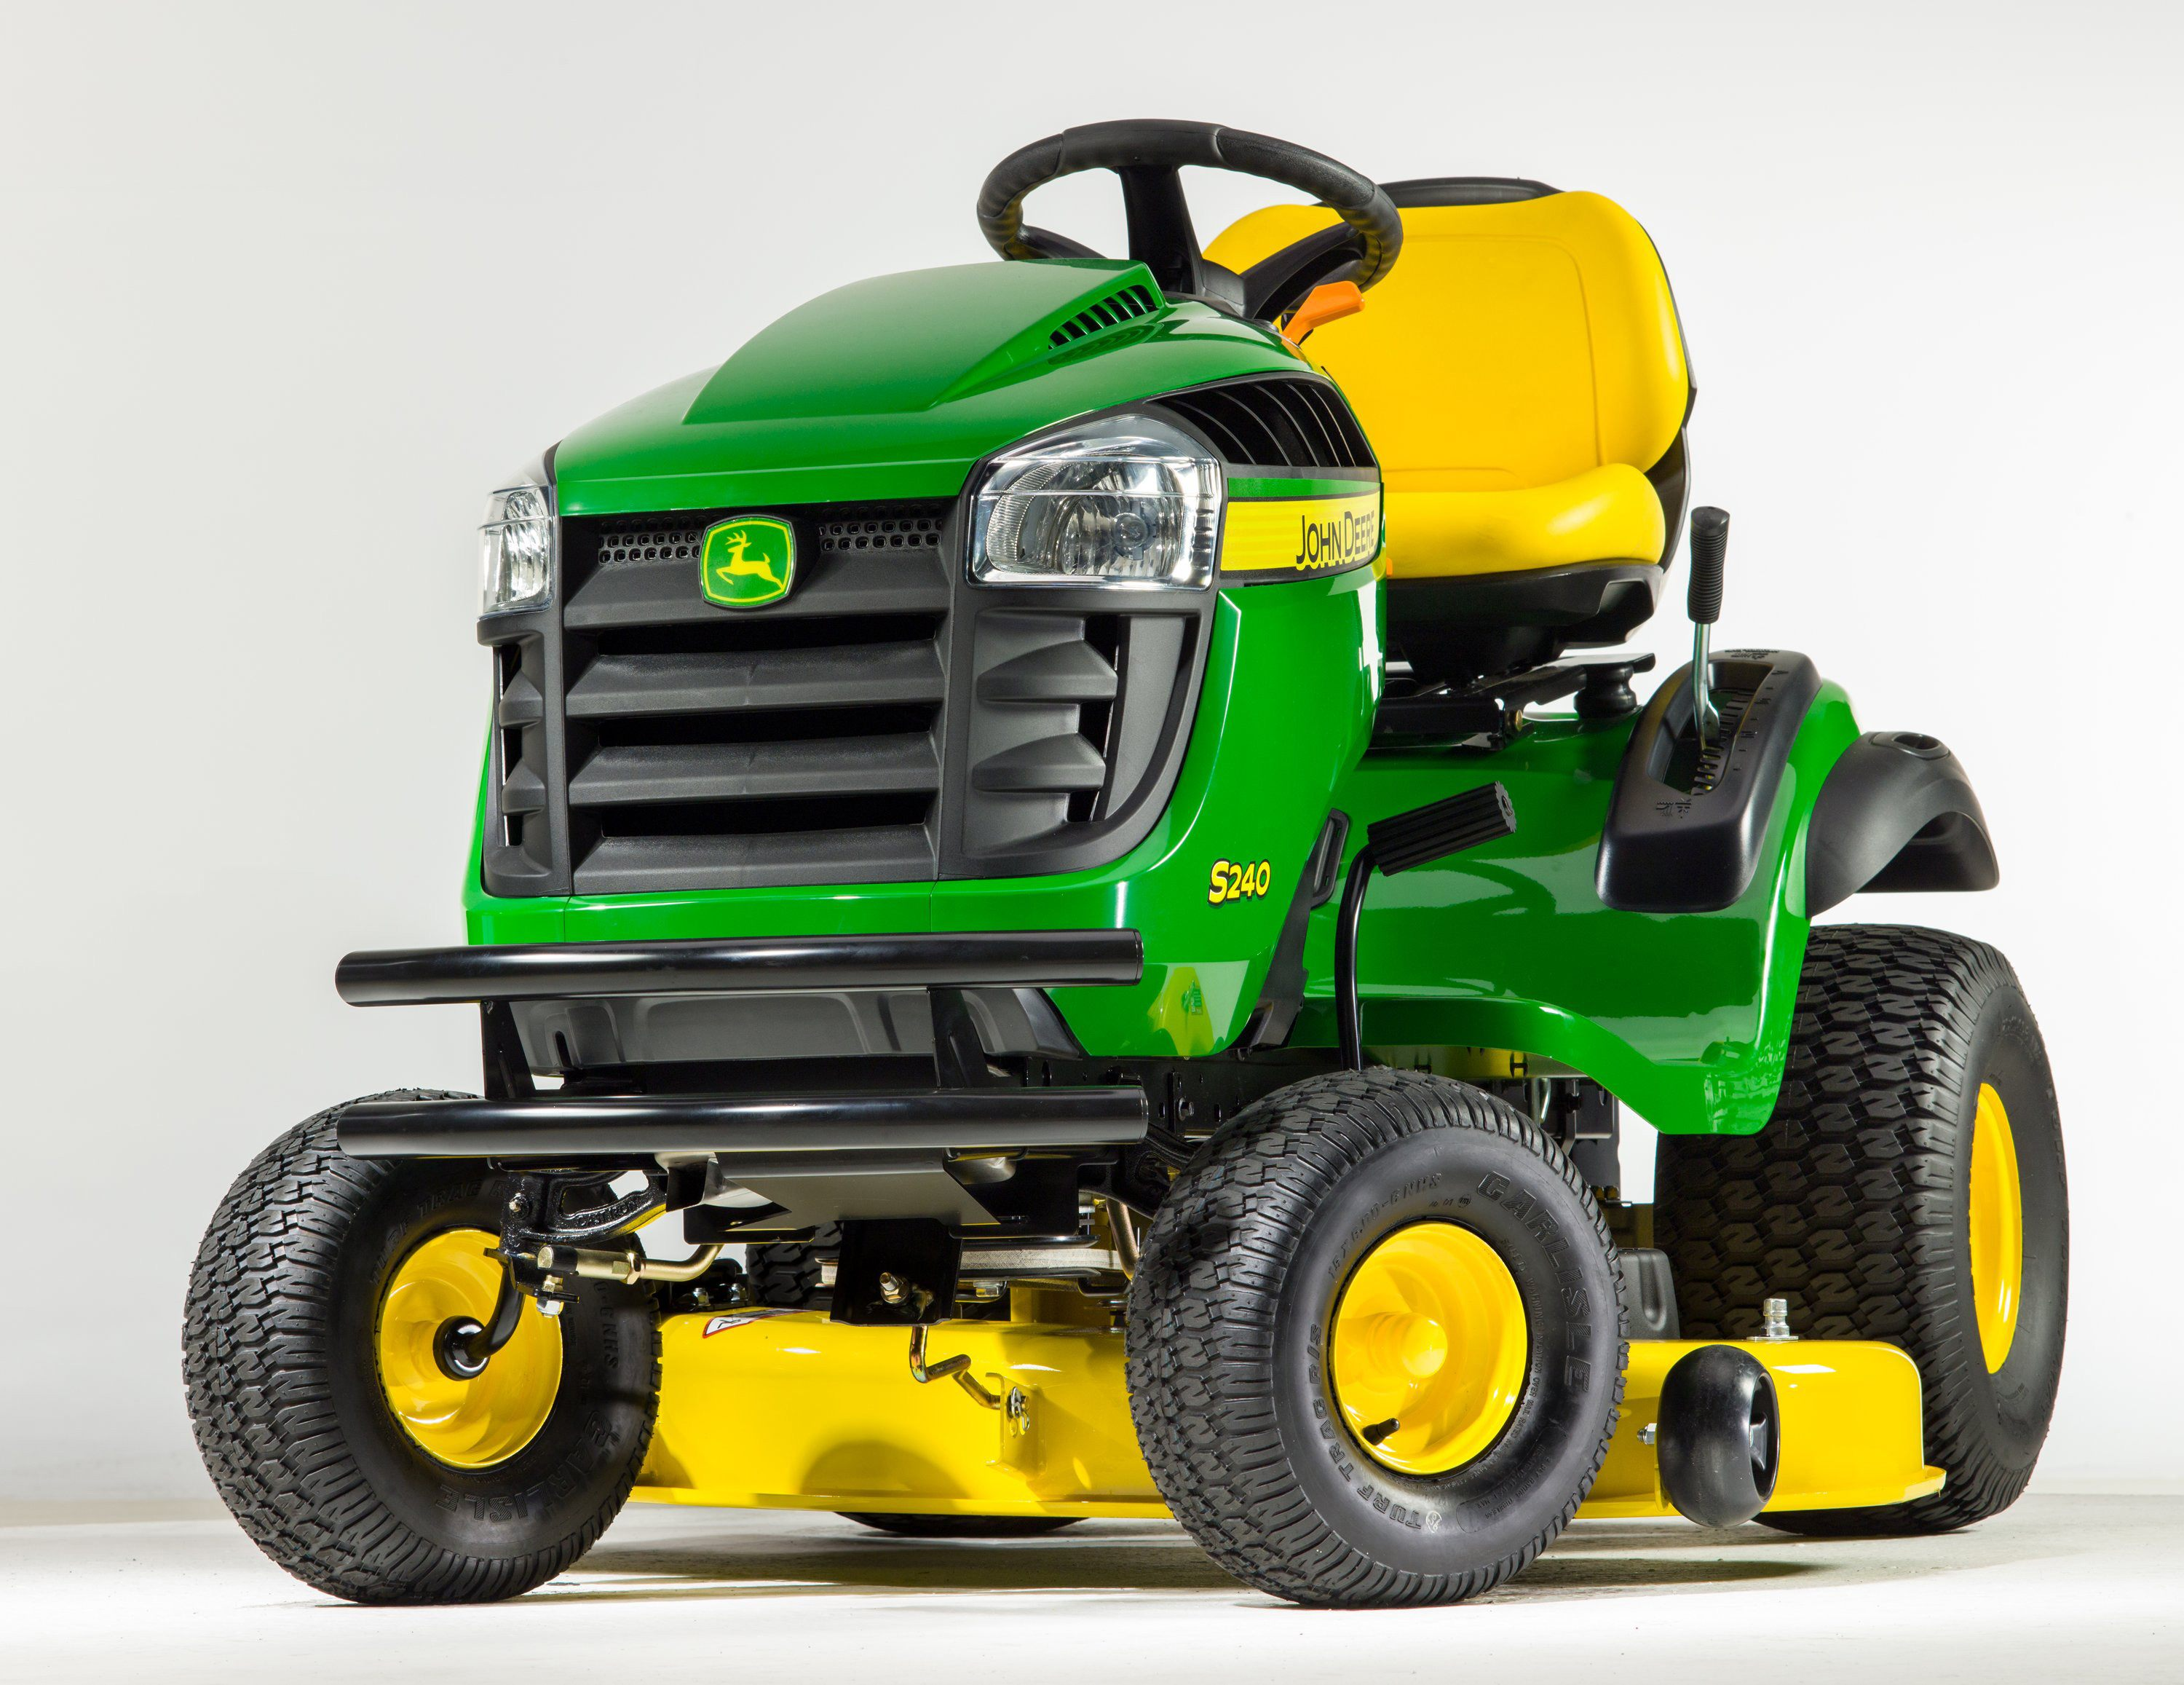 john deere x350 vs s240 lawn mower comparison